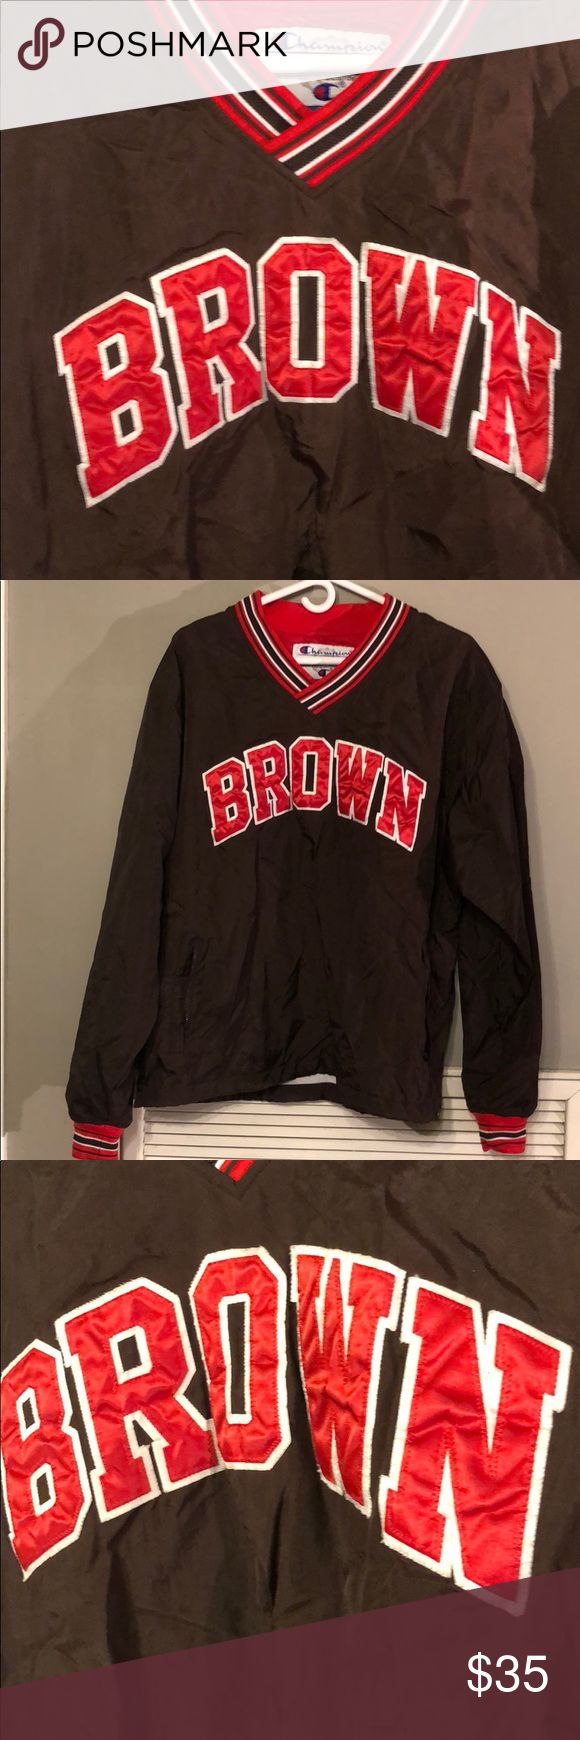 90s Champion Pullover Vintage 90s Brown University Ivy League College   Pullover Jacket   Sz. M Champion Jackets & Coats